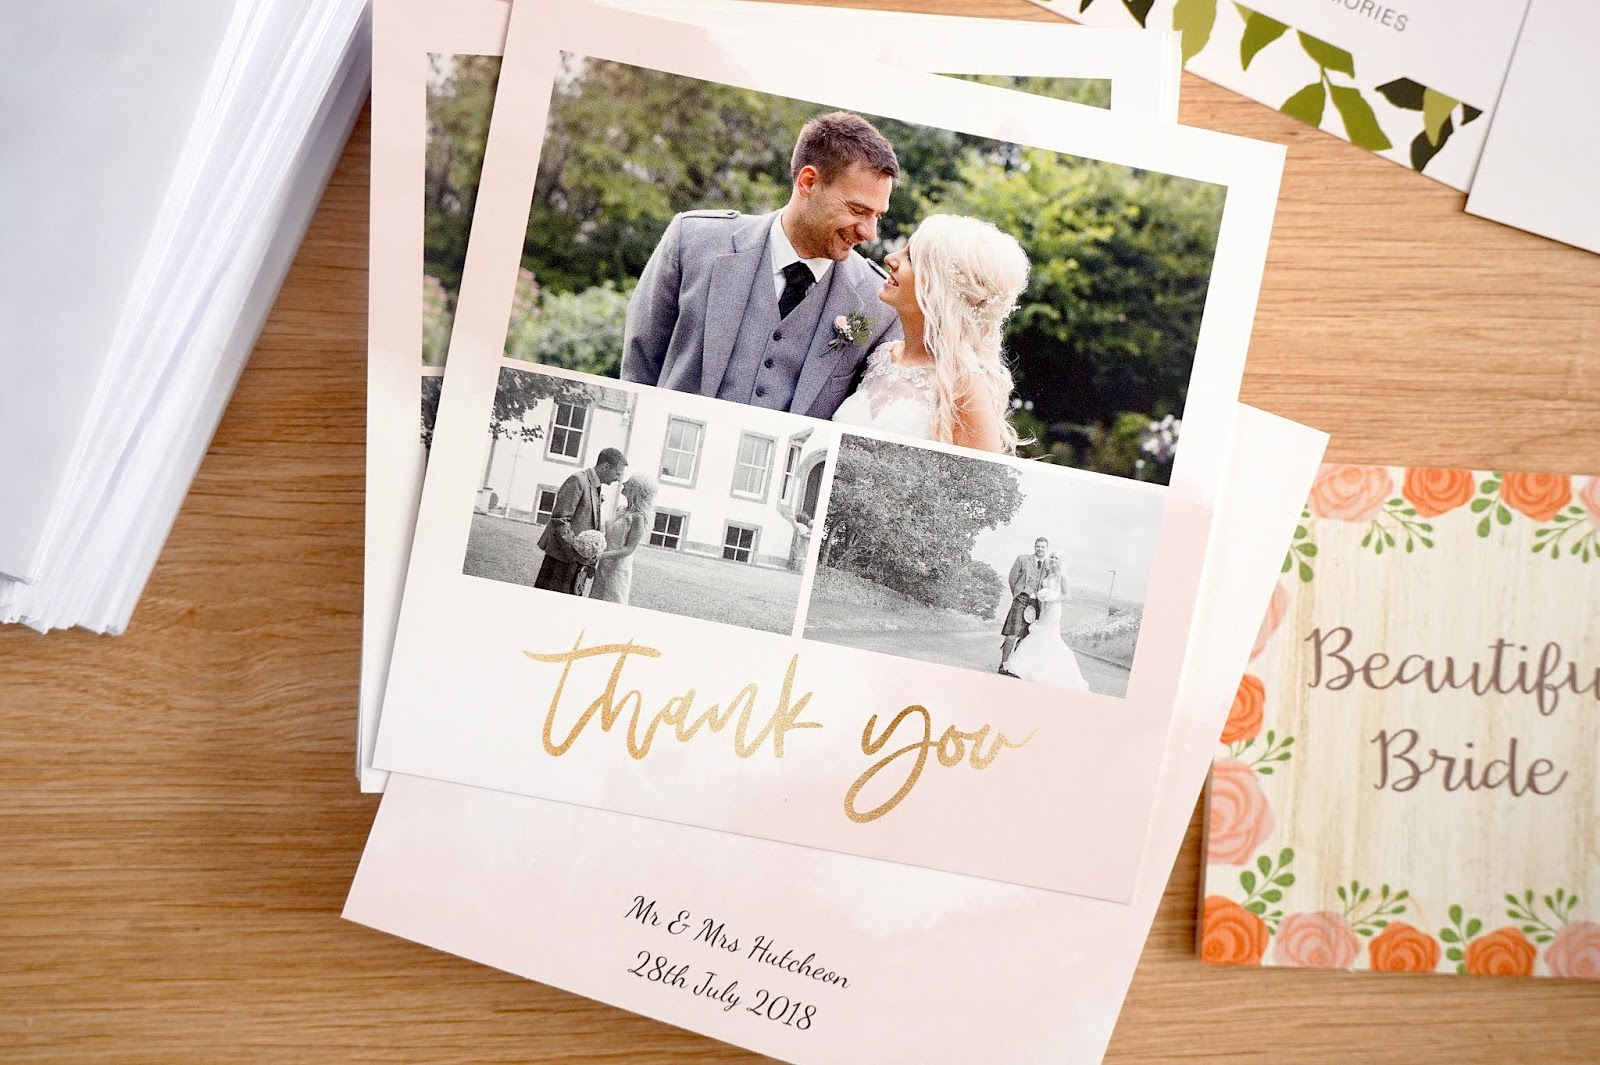 Our Order Arrived Really Quickly Within 3 Days And We Were Impressed By The Quality Photos Printed So Bright Clearly Card Is